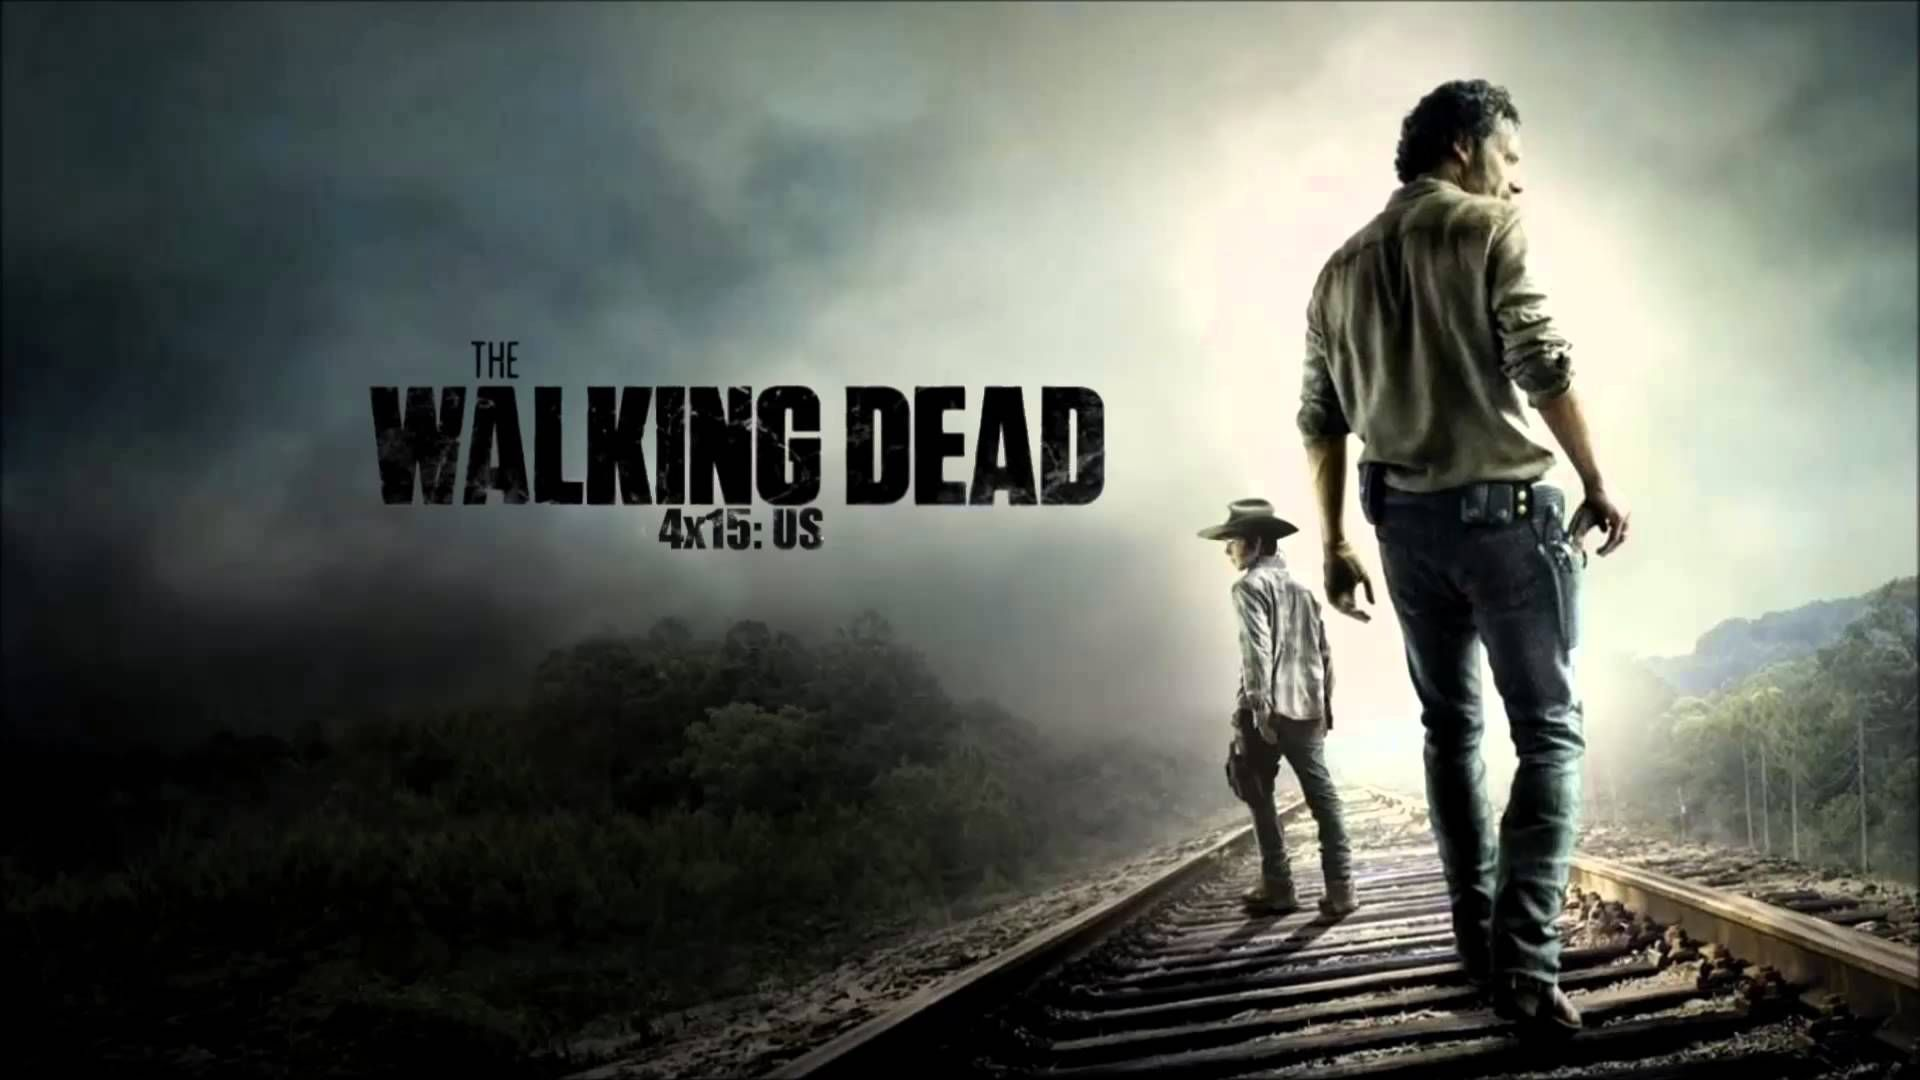 The walking dead wallpaper pesquisa google the walking dead the walking dead wallpaper pesquisa google the walking dead pinterest wallpaper voltagebd Choice Image